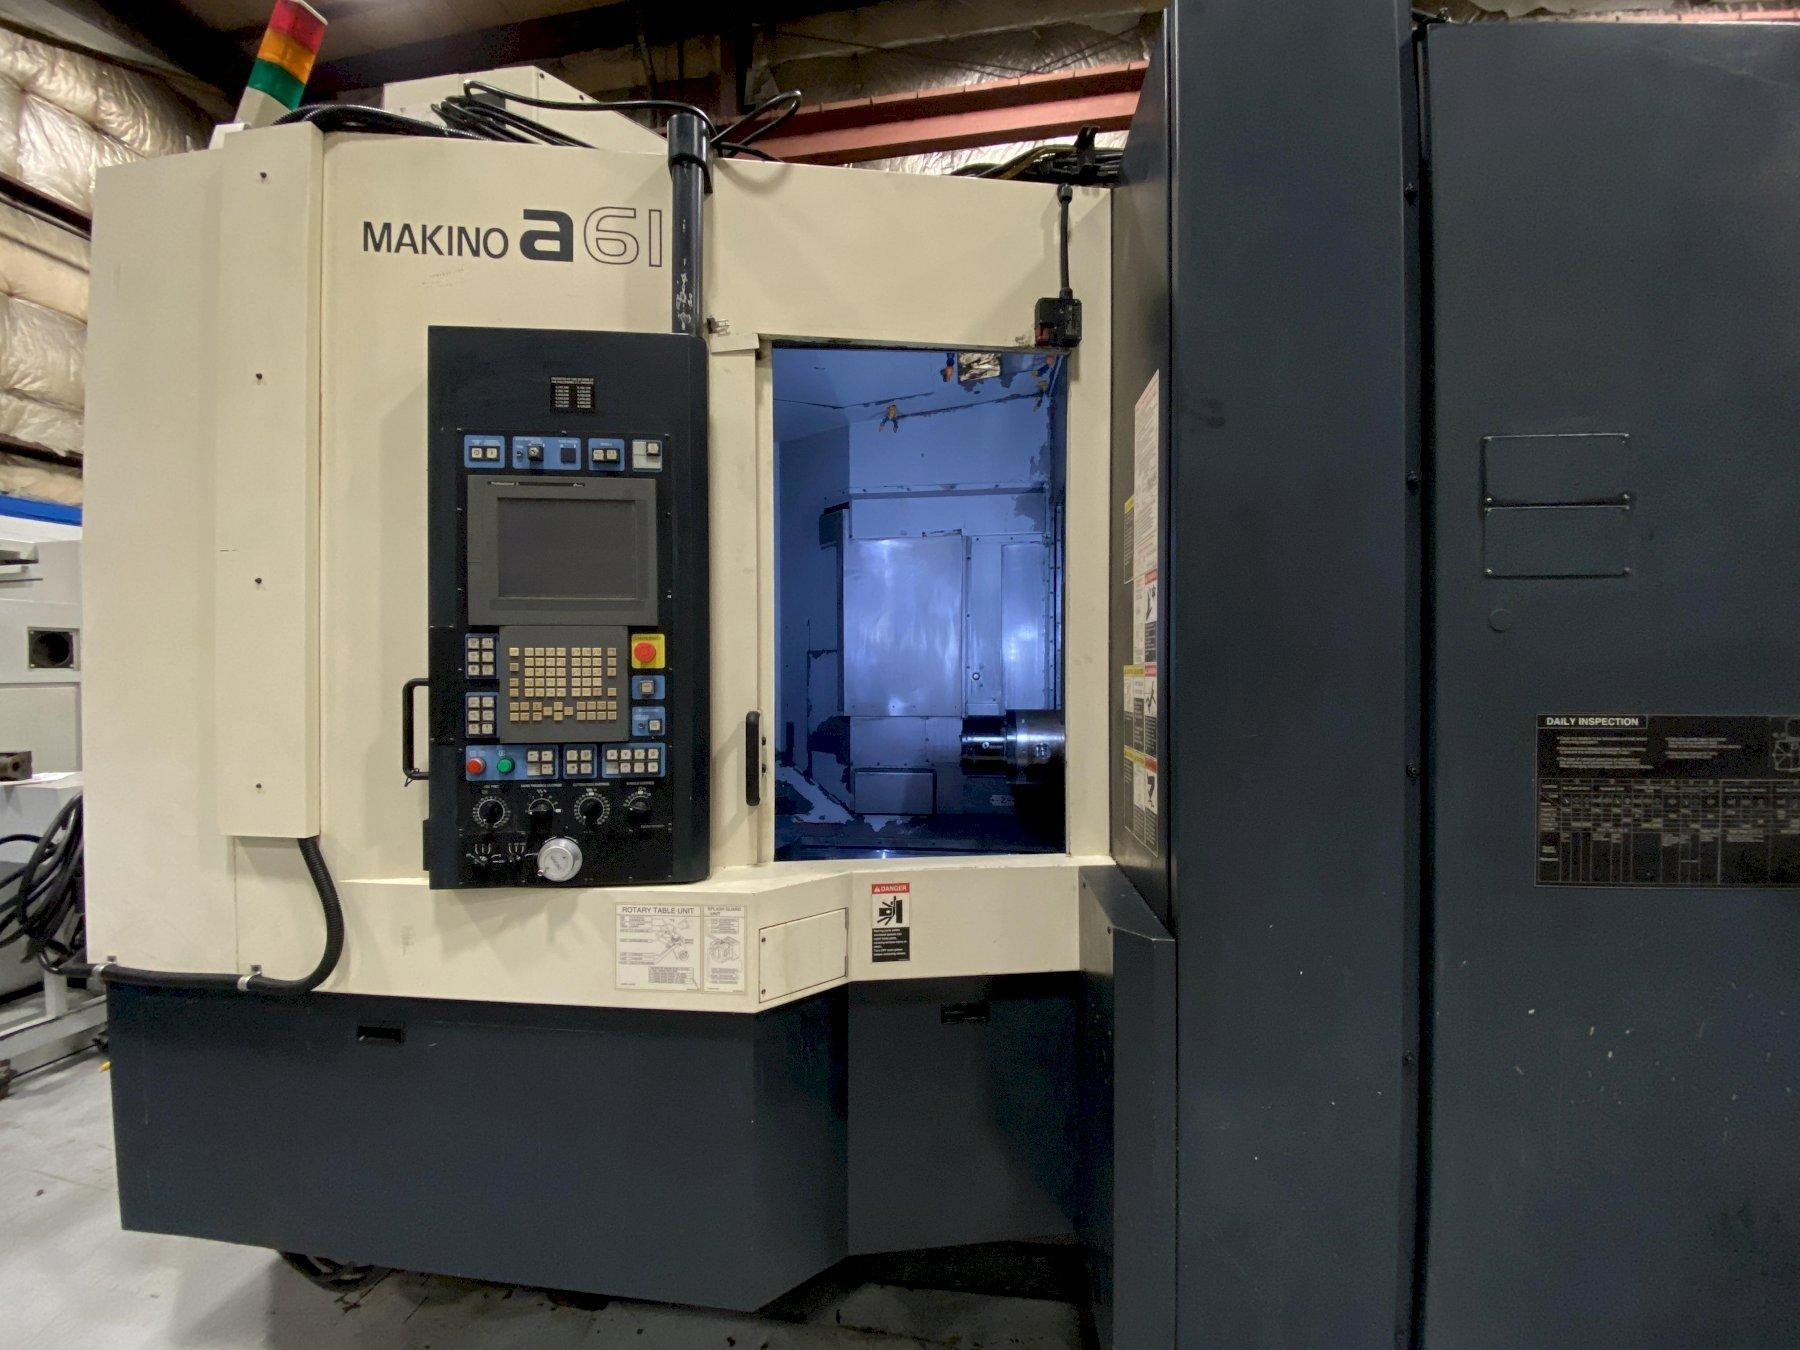 Makino A61 CNC Horizontal Machining Center, Fanuc Pro 5, 12K Spindle, 19.7